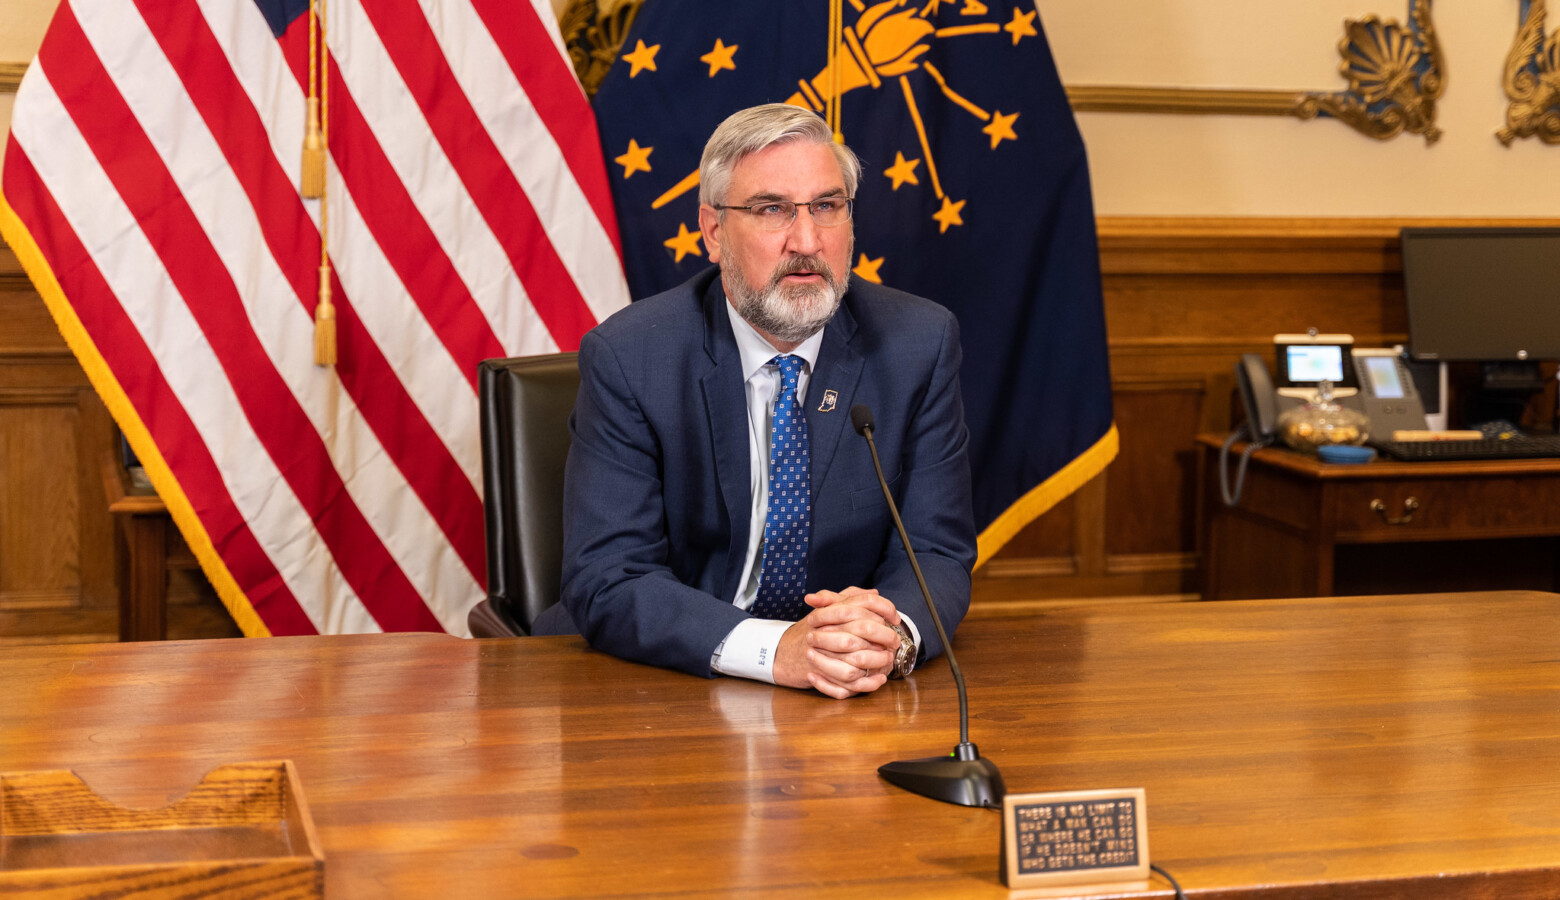 Gov. Eric Holcomb announced in a statewide address he will end all statewide COVID-19 restrictions on April 6. (Courtesy of the governor's office)